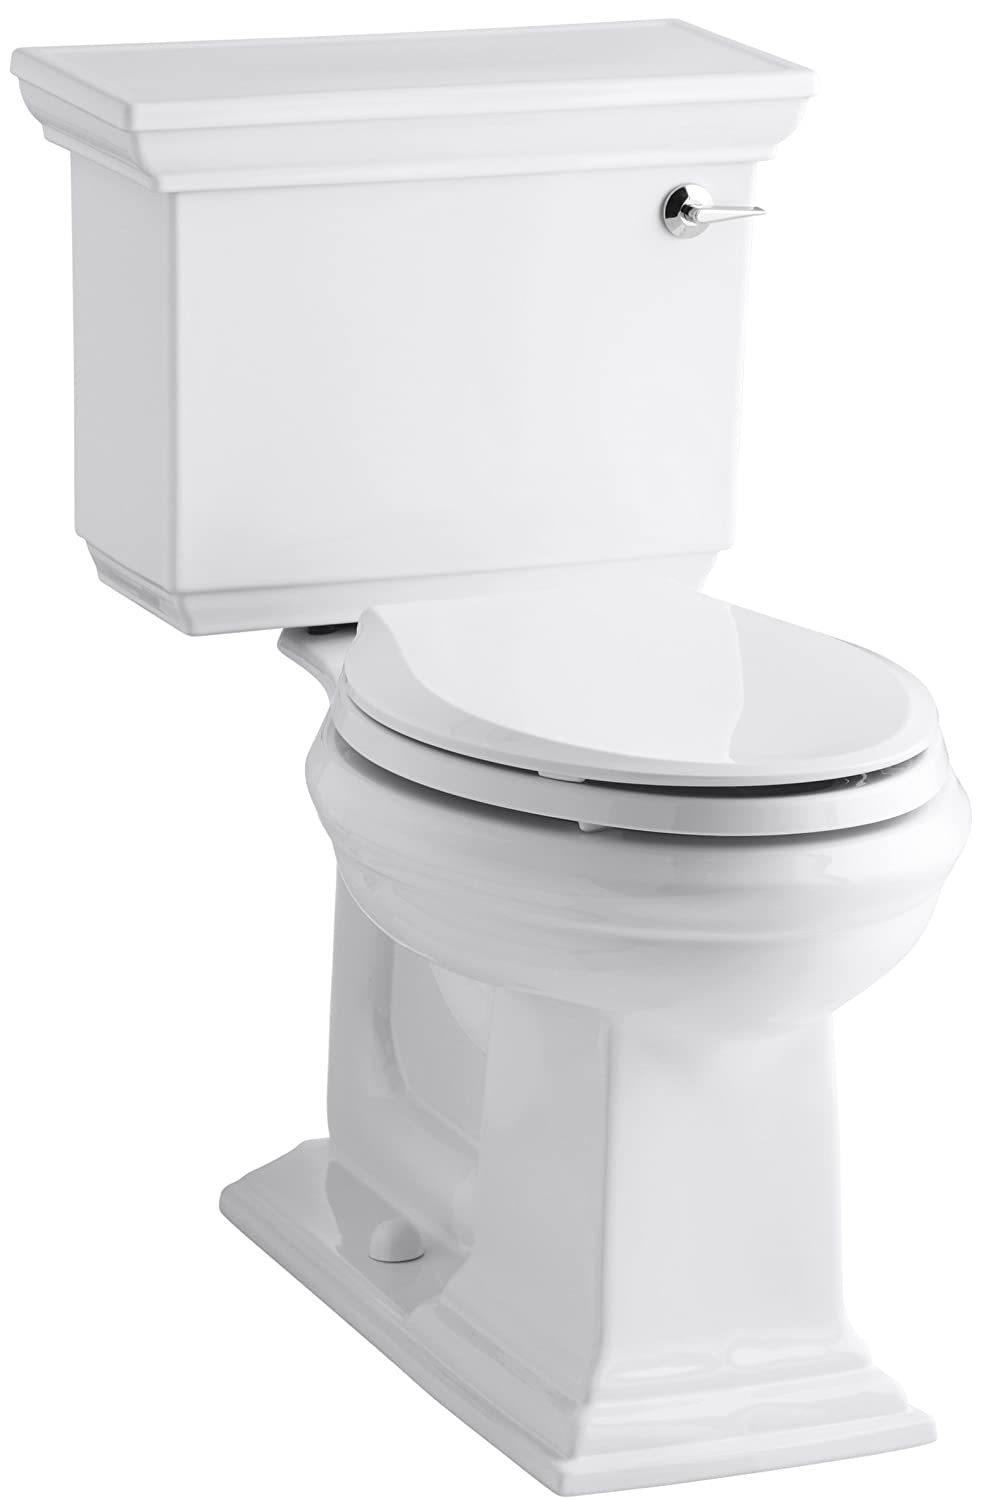 free shipping KOHLER K-3817-RA-0 Memoirs Stately Comfort Height Two-Piece Elongated 1.28 GPF Toilet with AquaPiston Flush Technology and Right-Hand Trip Lever, White